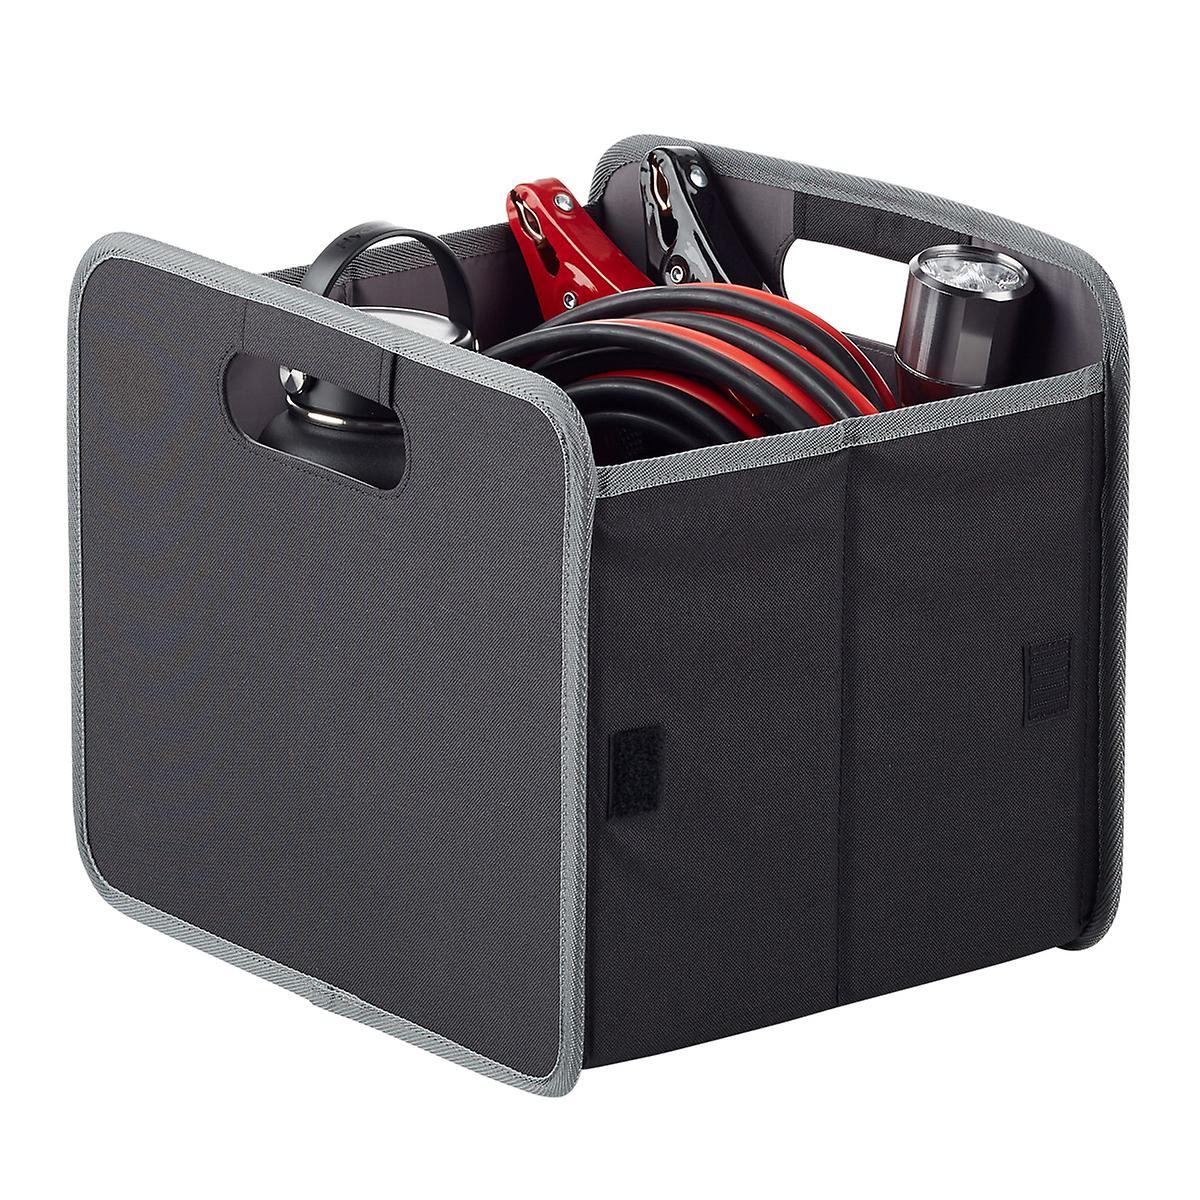 Small Foldable Trunk Organizer